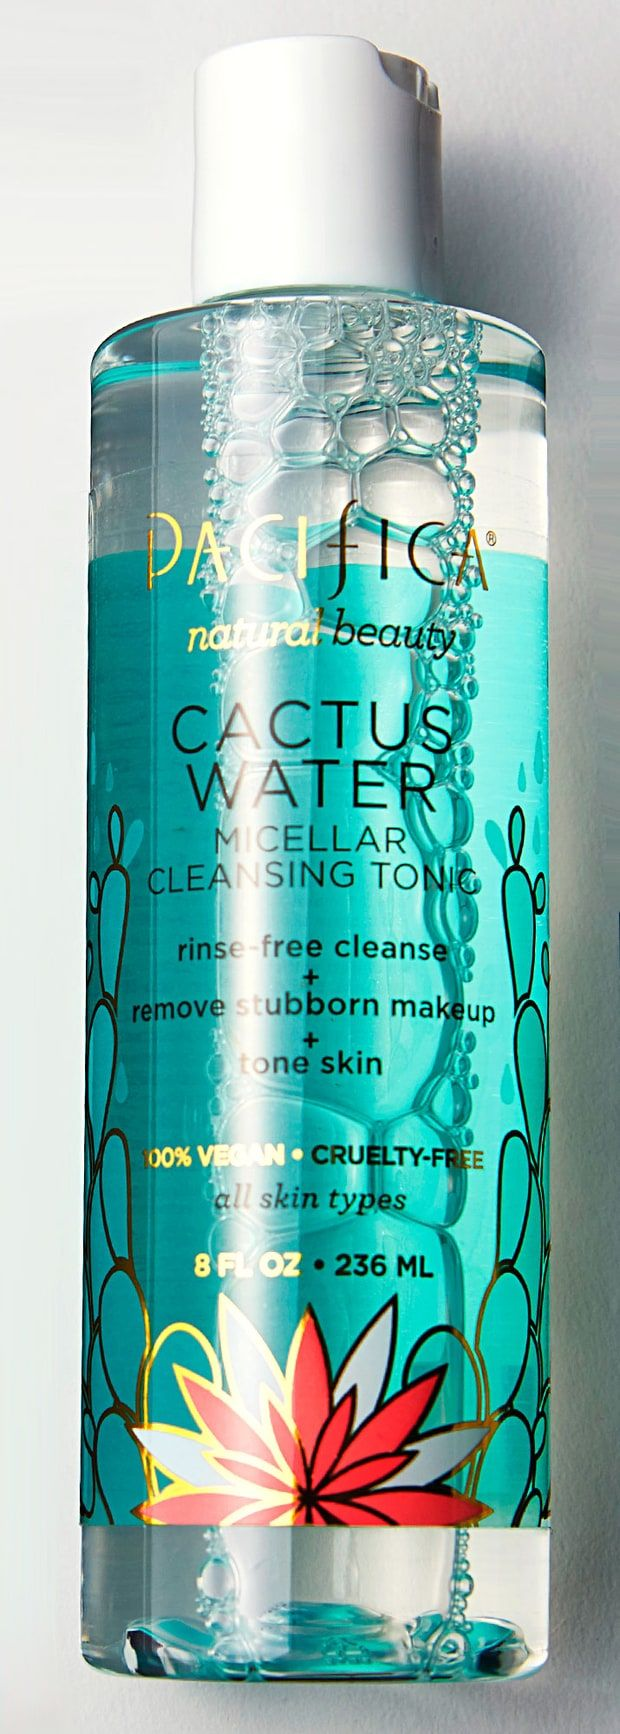 Pacifica Cactus Water Micellar Cleansing Tonic- this was okay. It cleaned well, but smells vaguely of plastic... I prefer the Simple brand to this one.